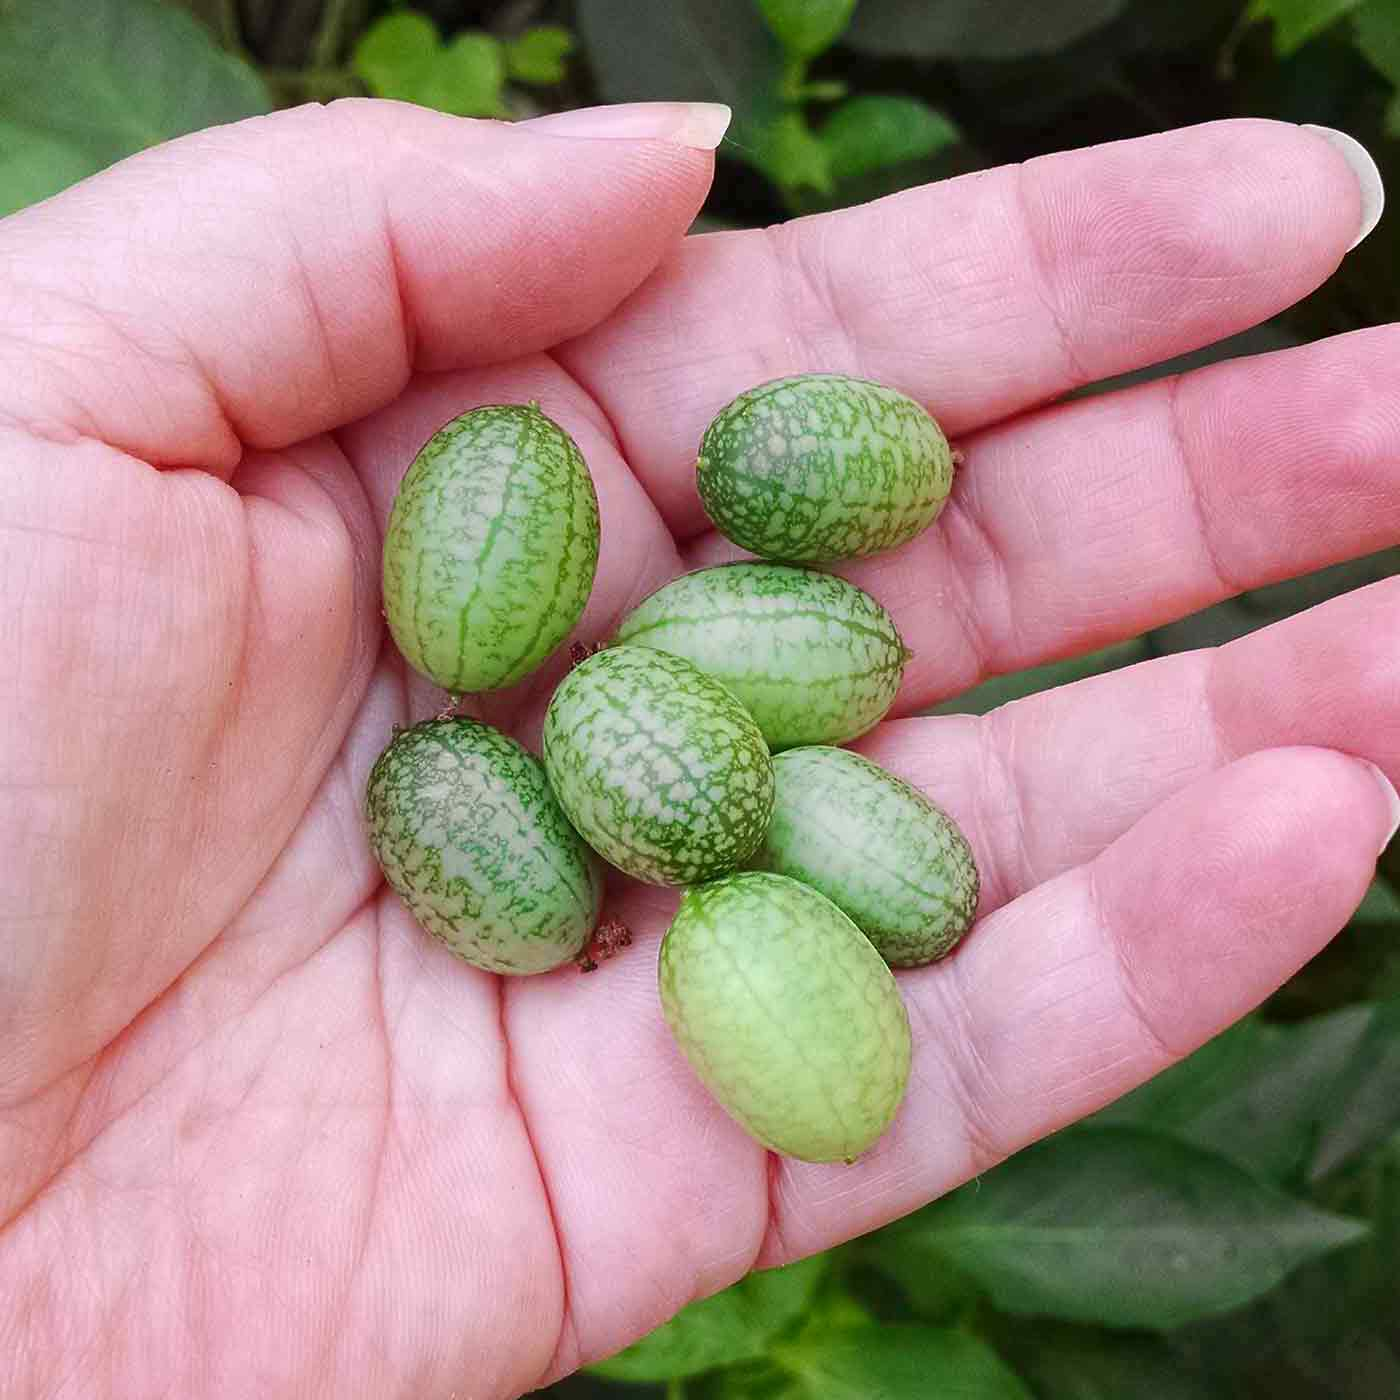 A handful of adorable cucamelons, freshly harvested.